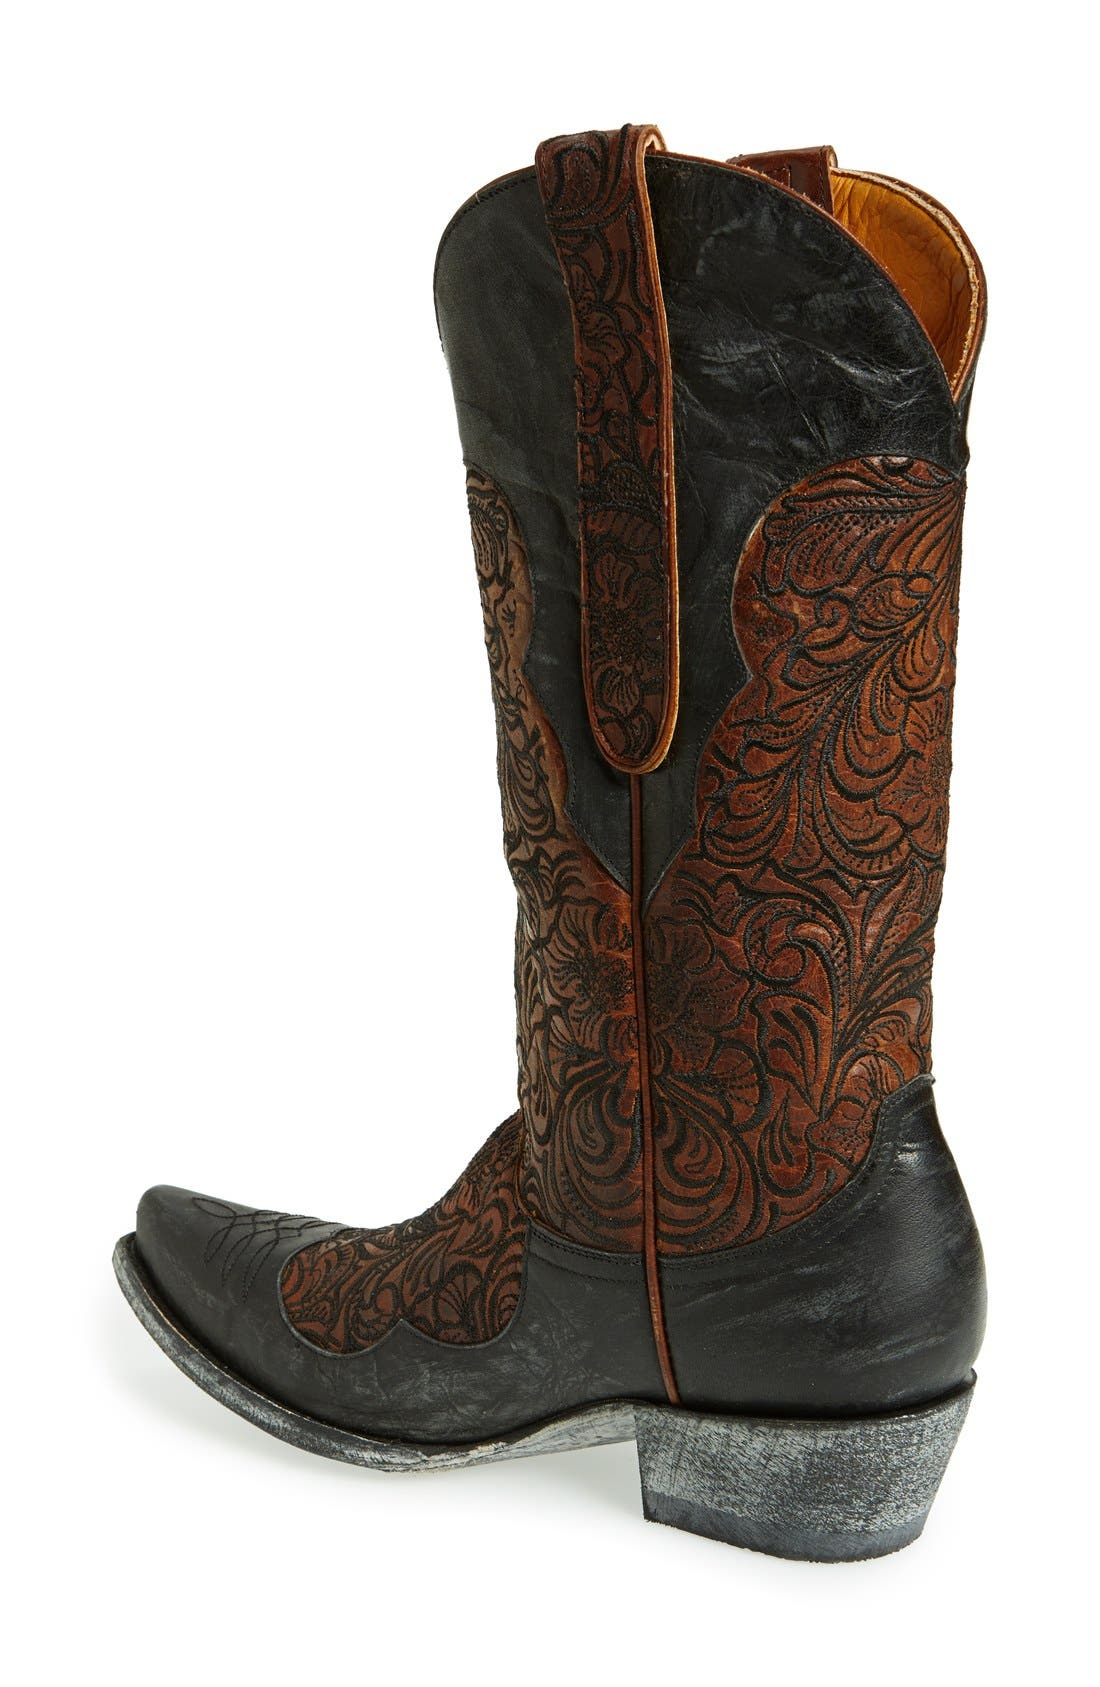 Alternate Image 2  - Old Gringo 'Feita' Floral Embroidered Leather Boot (Women)